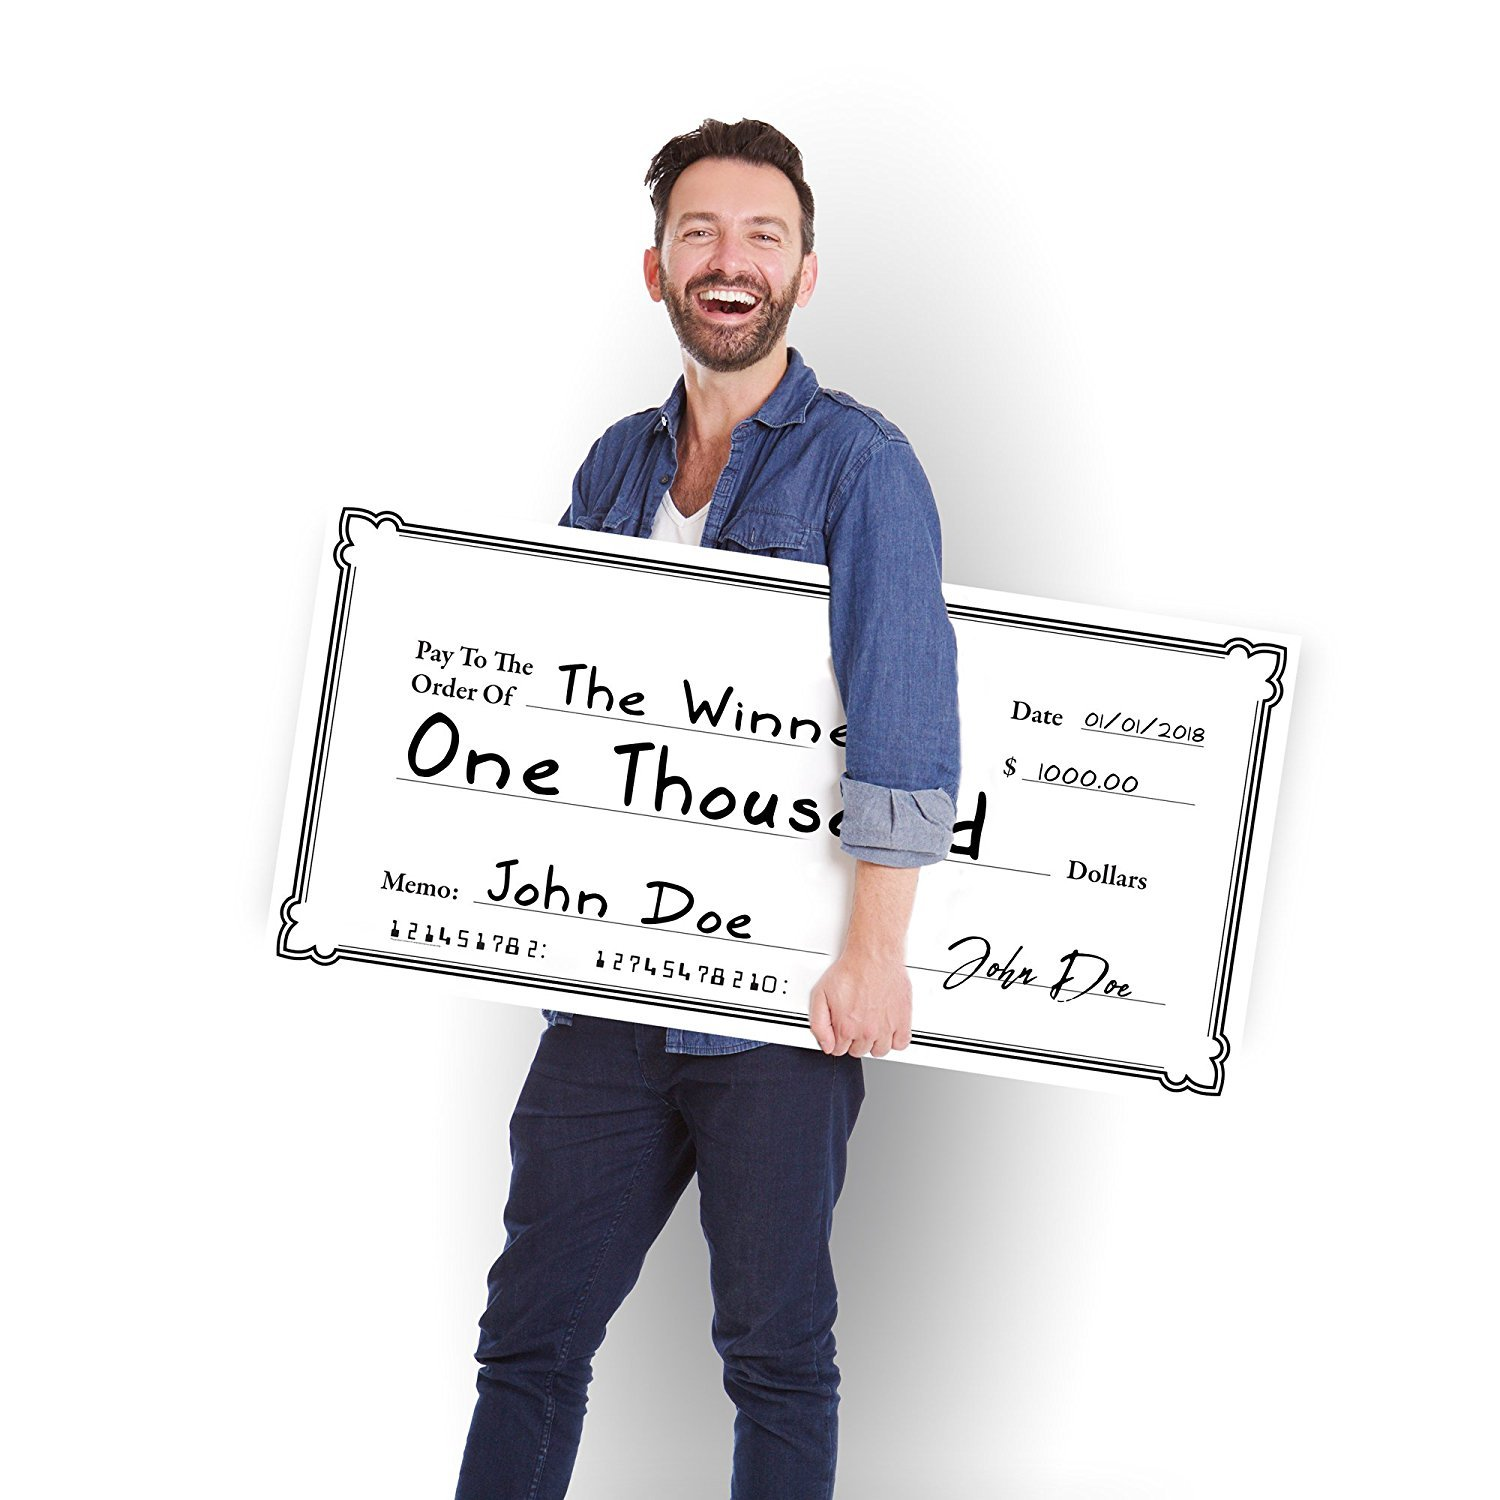 Big Blank Check 24 x 48 Corrugated Plastic Oversized Presentation Check 2 x 4 Coroplast Novelty Check for Fundraiser and Raffle Prizes Giant Fake Check White Check for Sweepstakes Winner